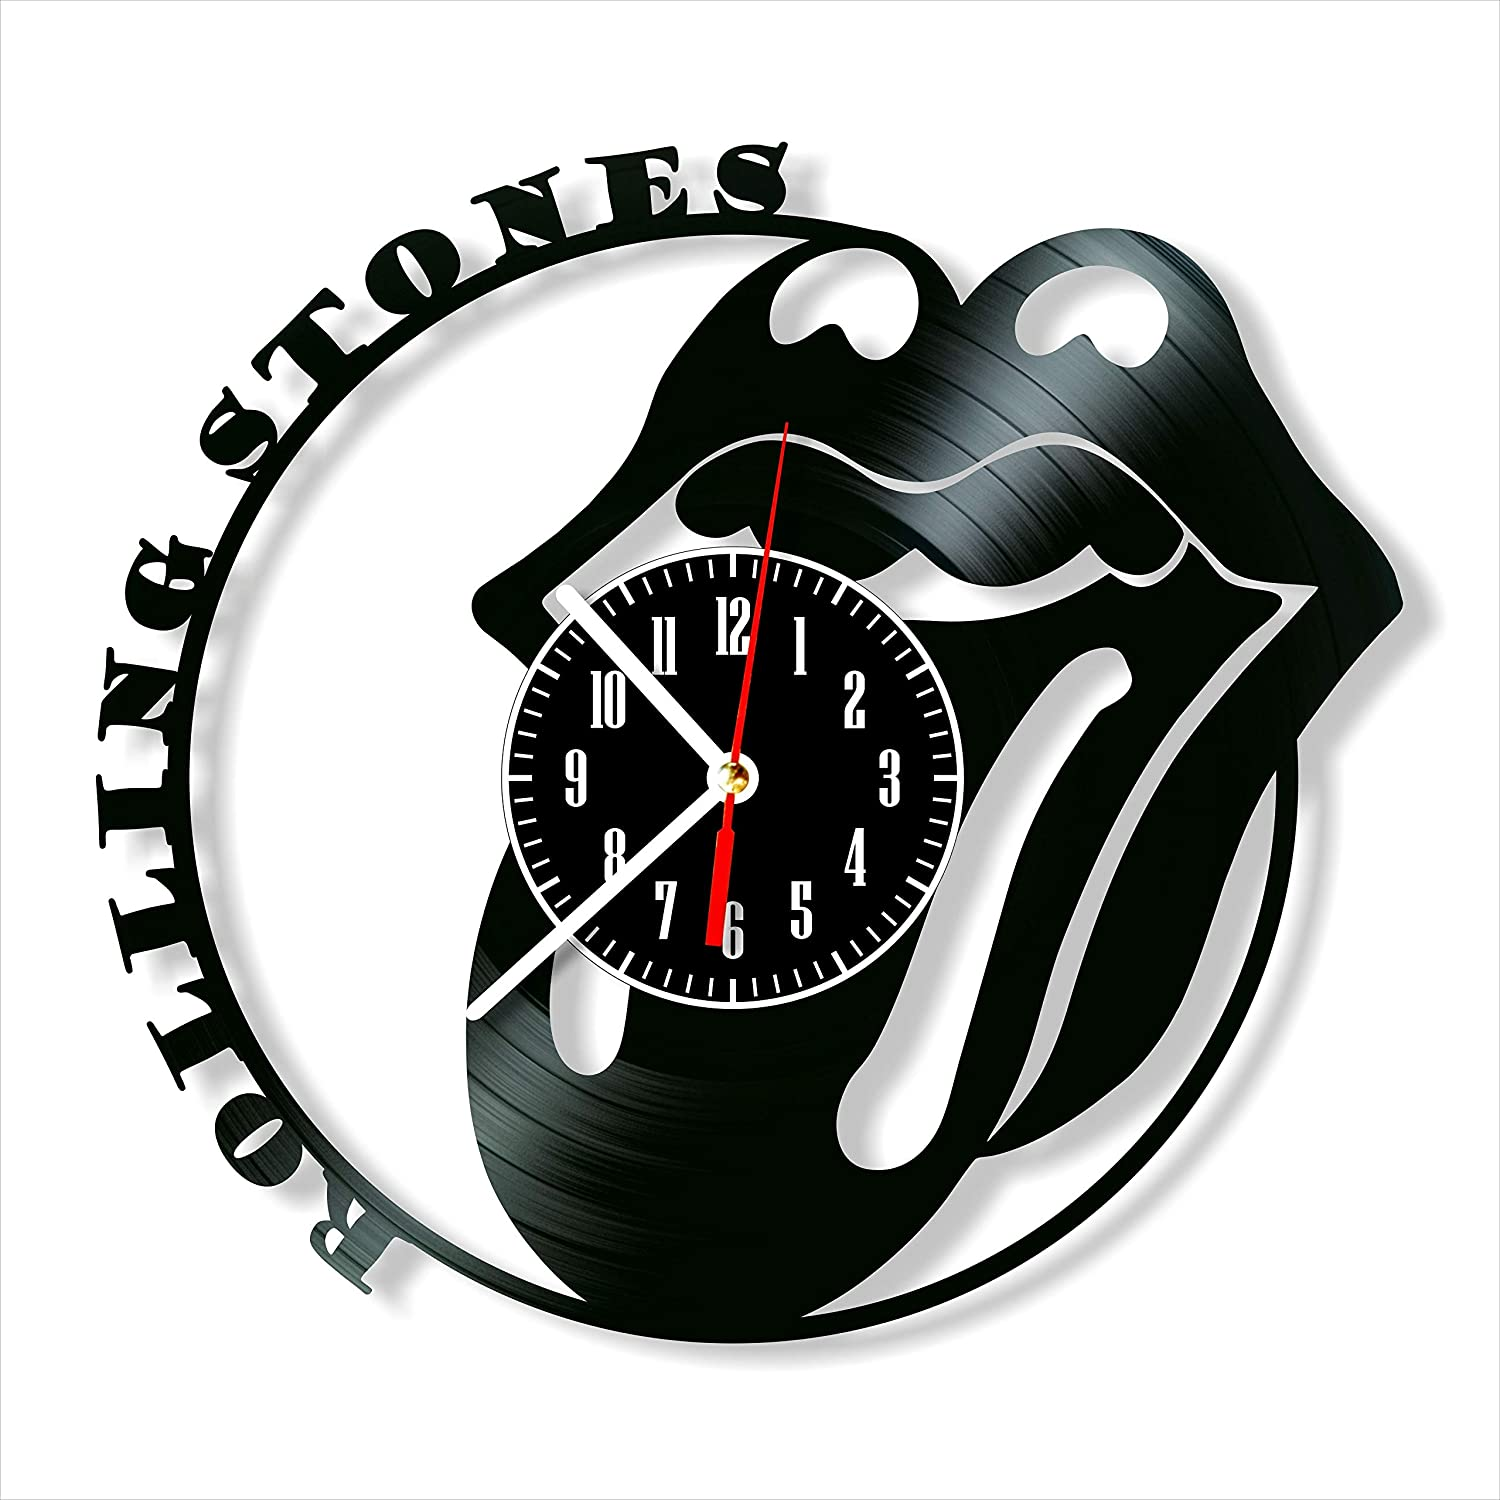 "Rolling Stones Clock Vinyl Clock, Rolling Stones Wall Clock 12"", Unique Art Decor, The Best Home Decorations"